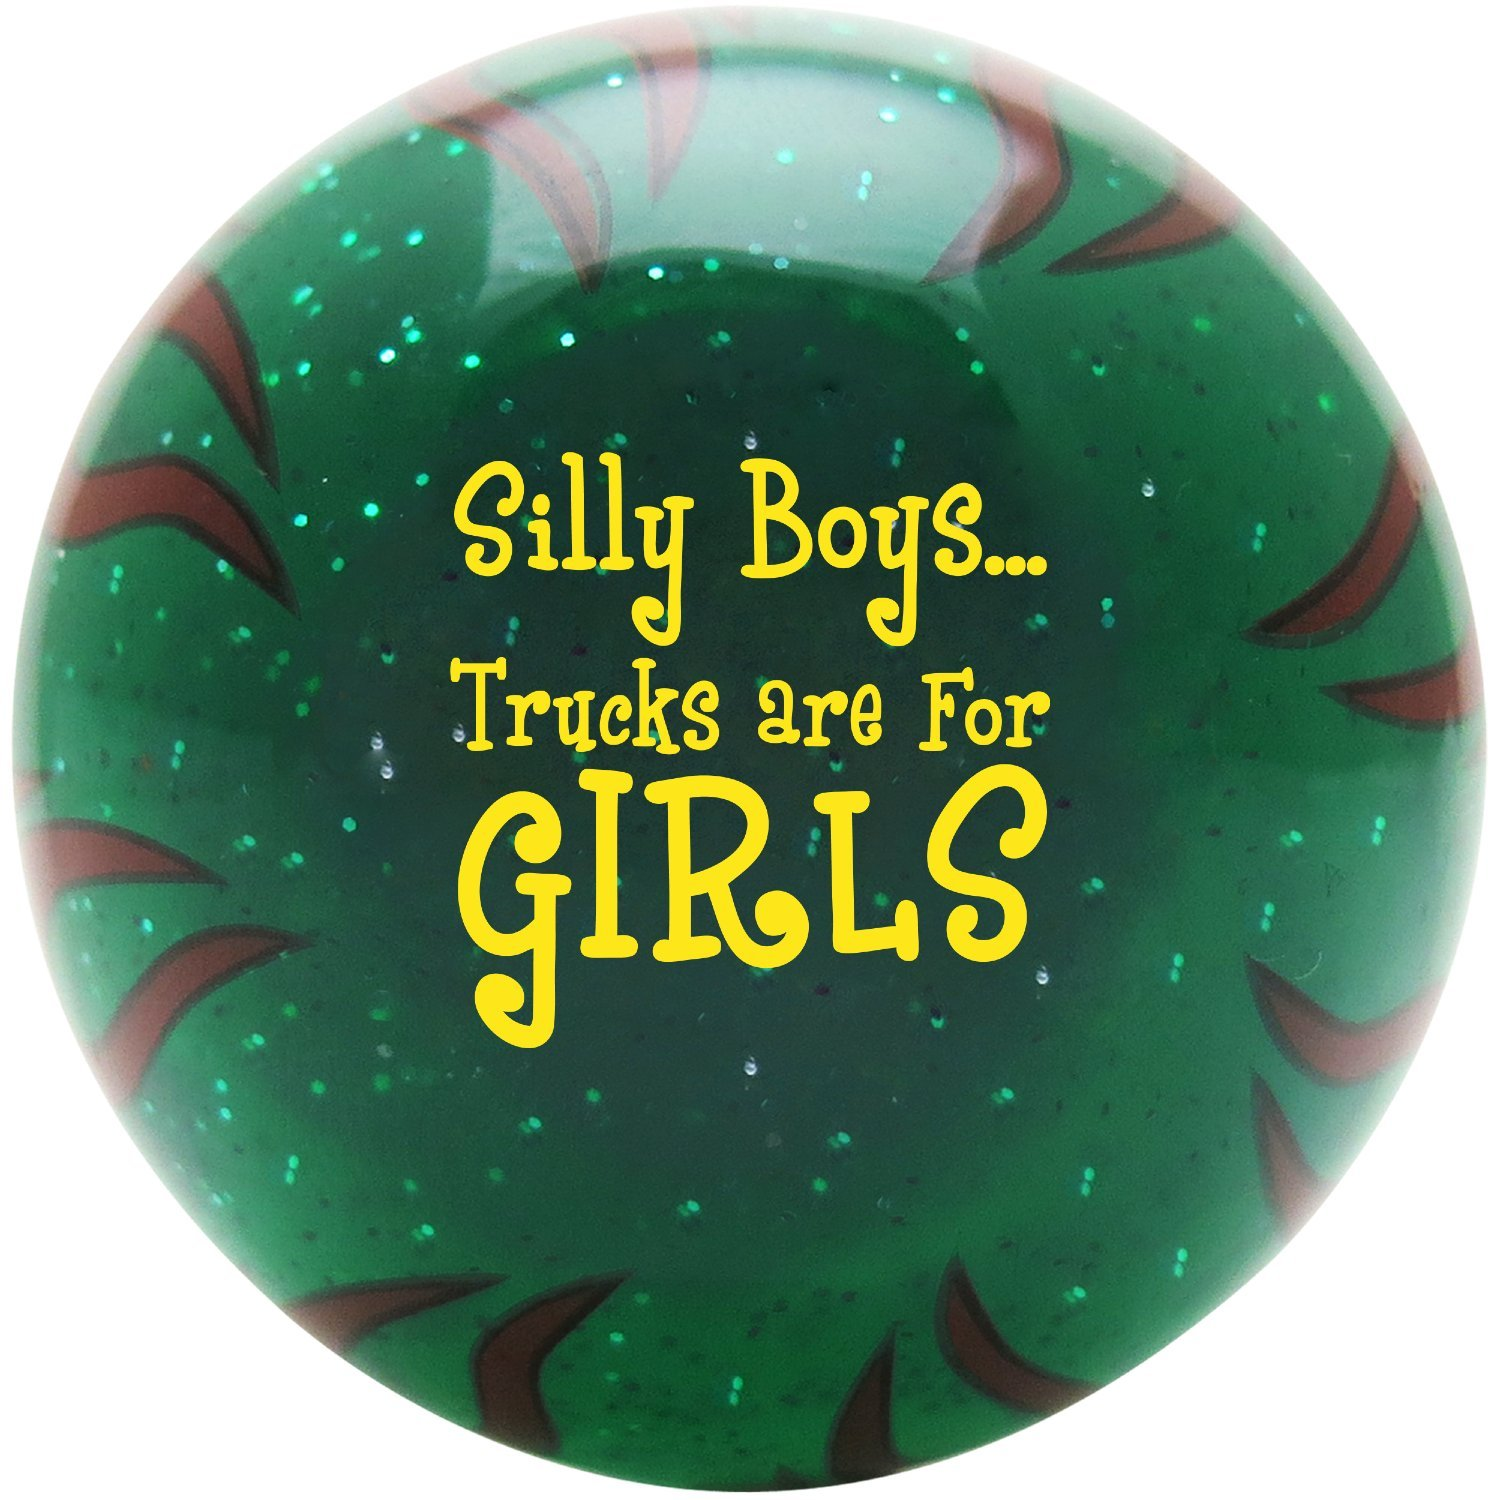 American Shifter 28909 Green Flame Metal Flake Shift Knob Yellow Silly Boys.Trucks are for Girls